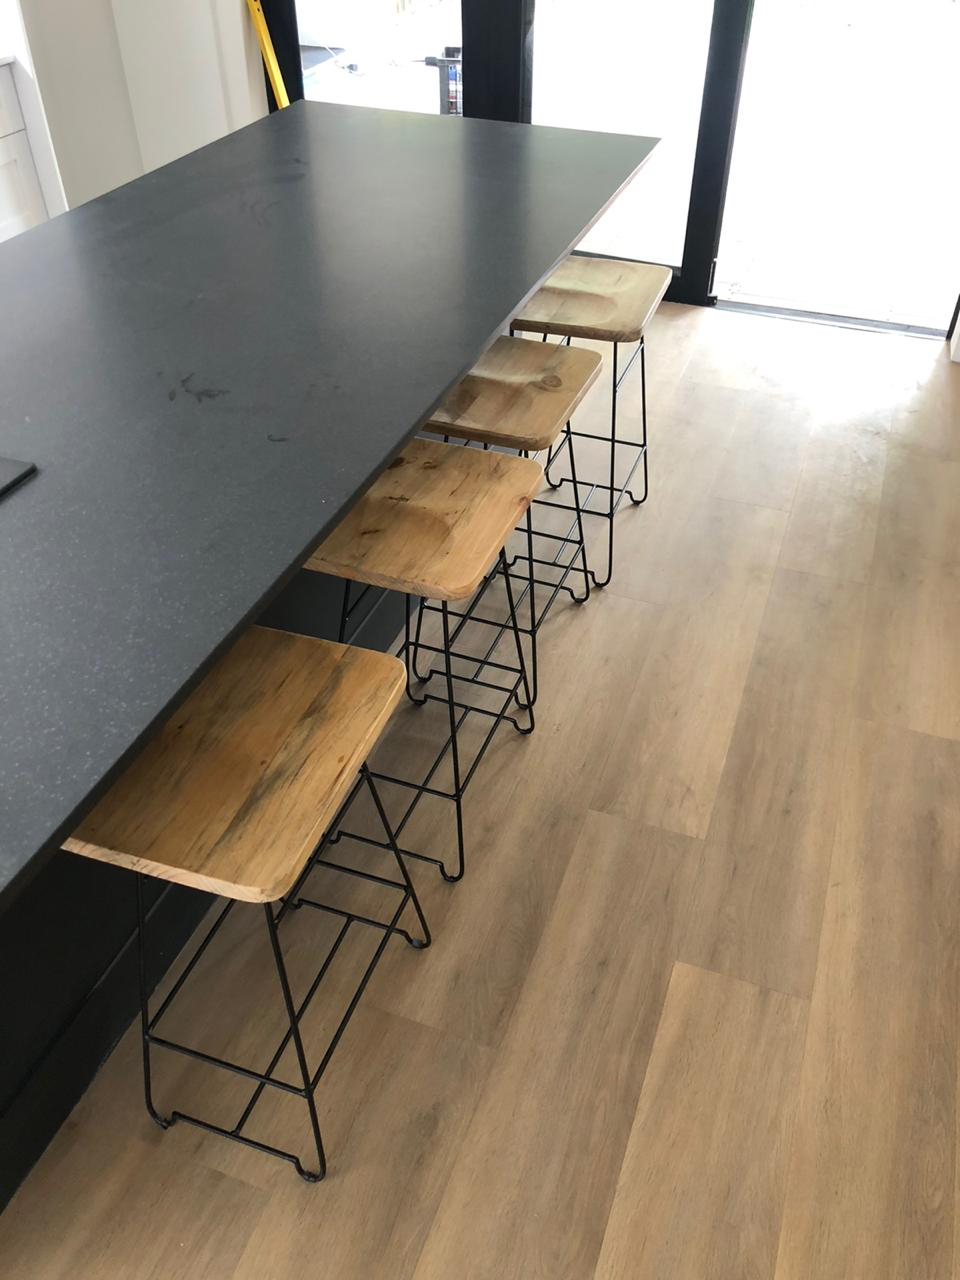 Steel and wood stools